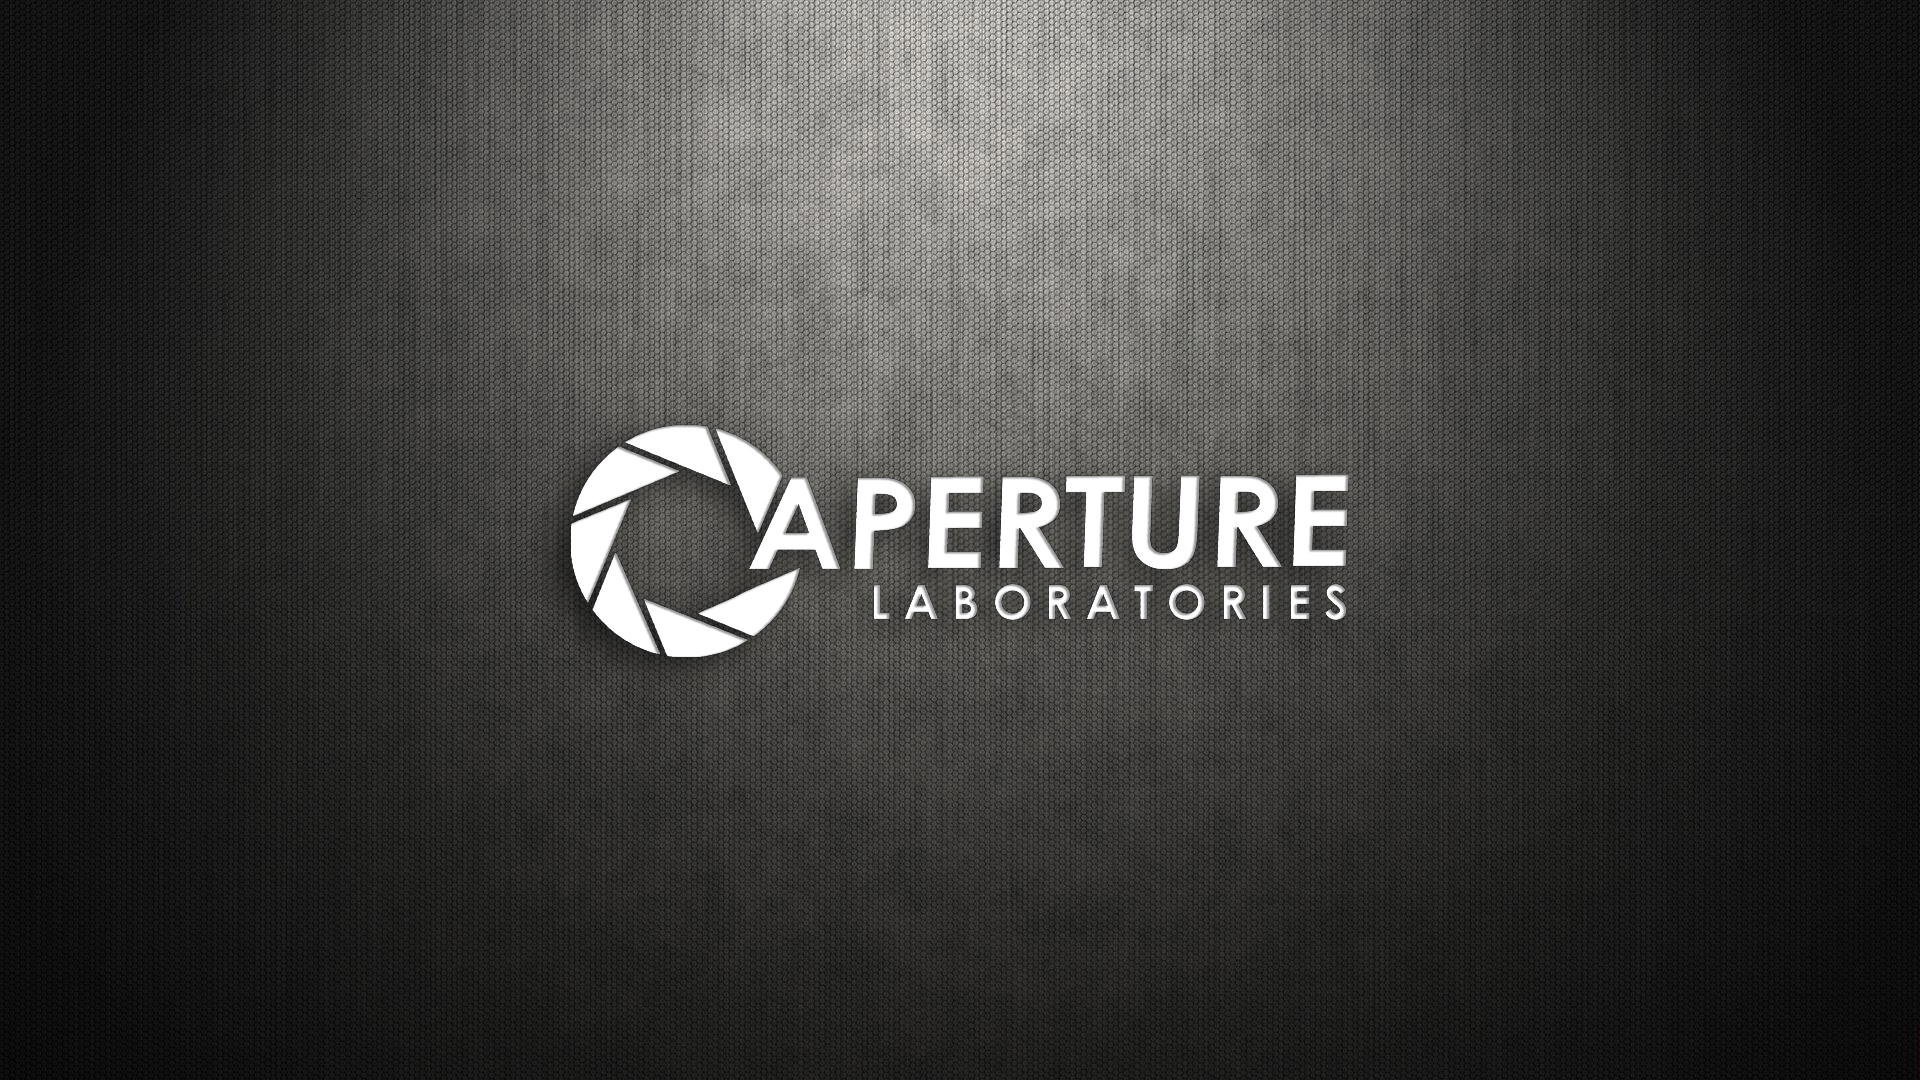 76+] Aperture Laboratories Wallpaper on WallpaperSafari.